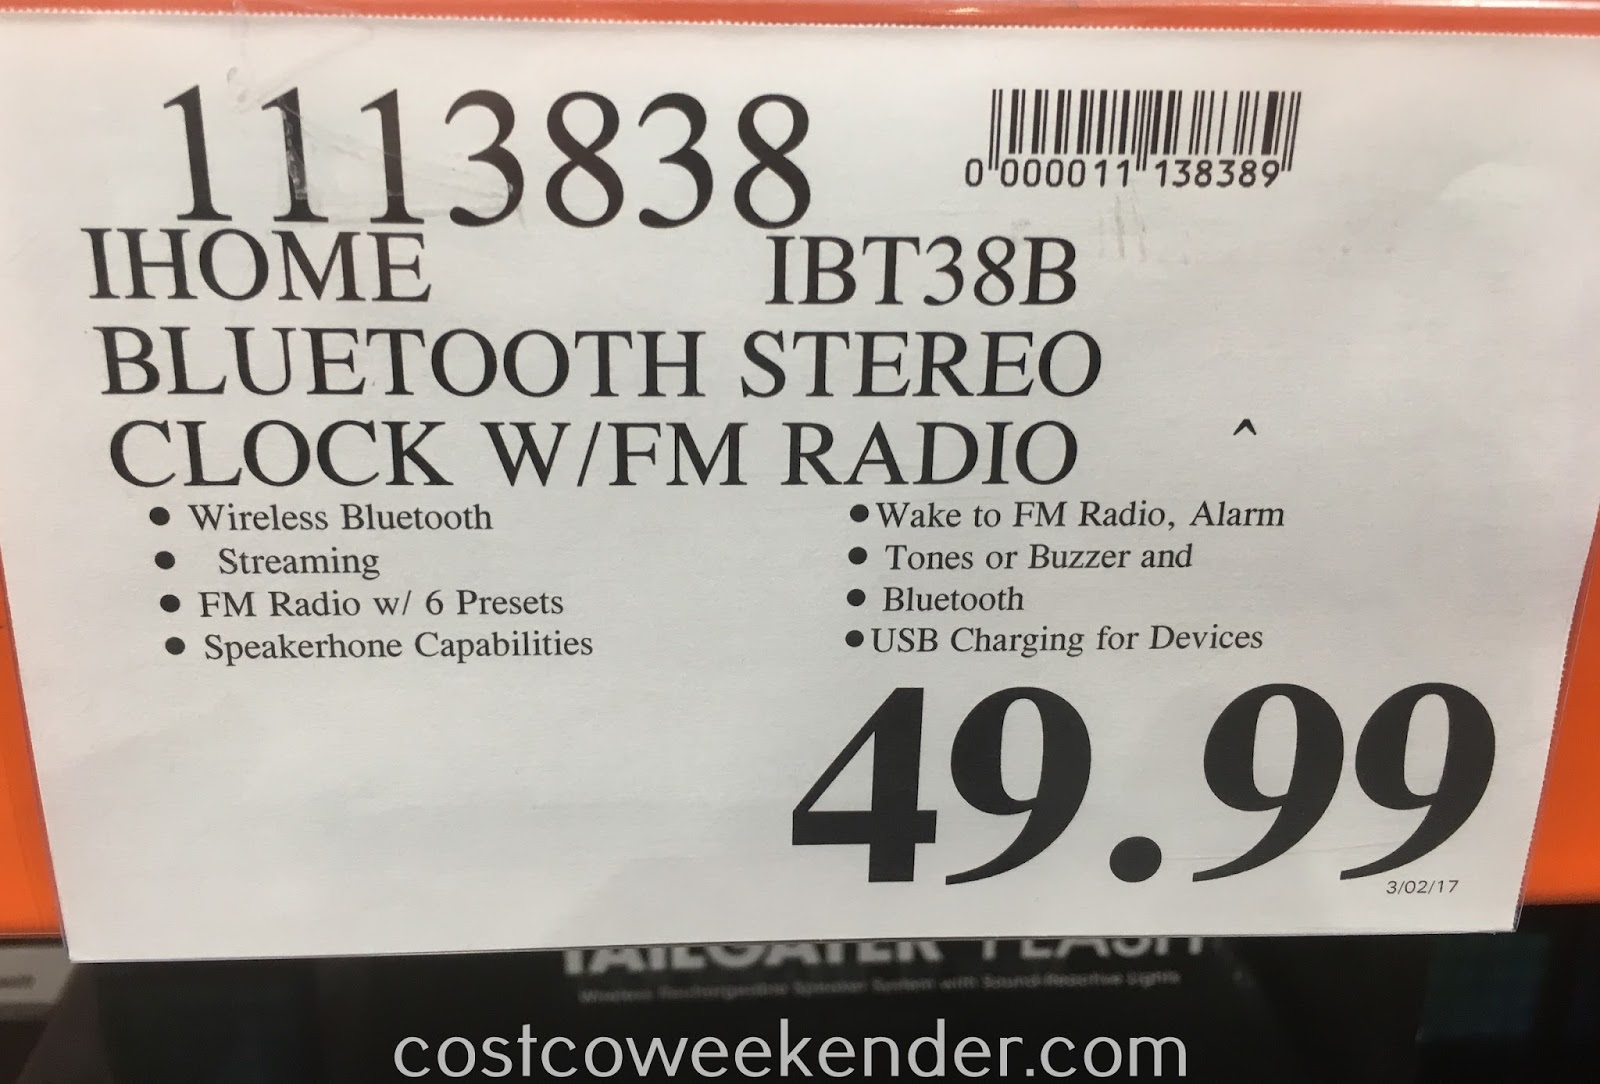 Deal for the iHome iBT38B Dual Alarm Stereo Clock Radio + USB Charging at Costco